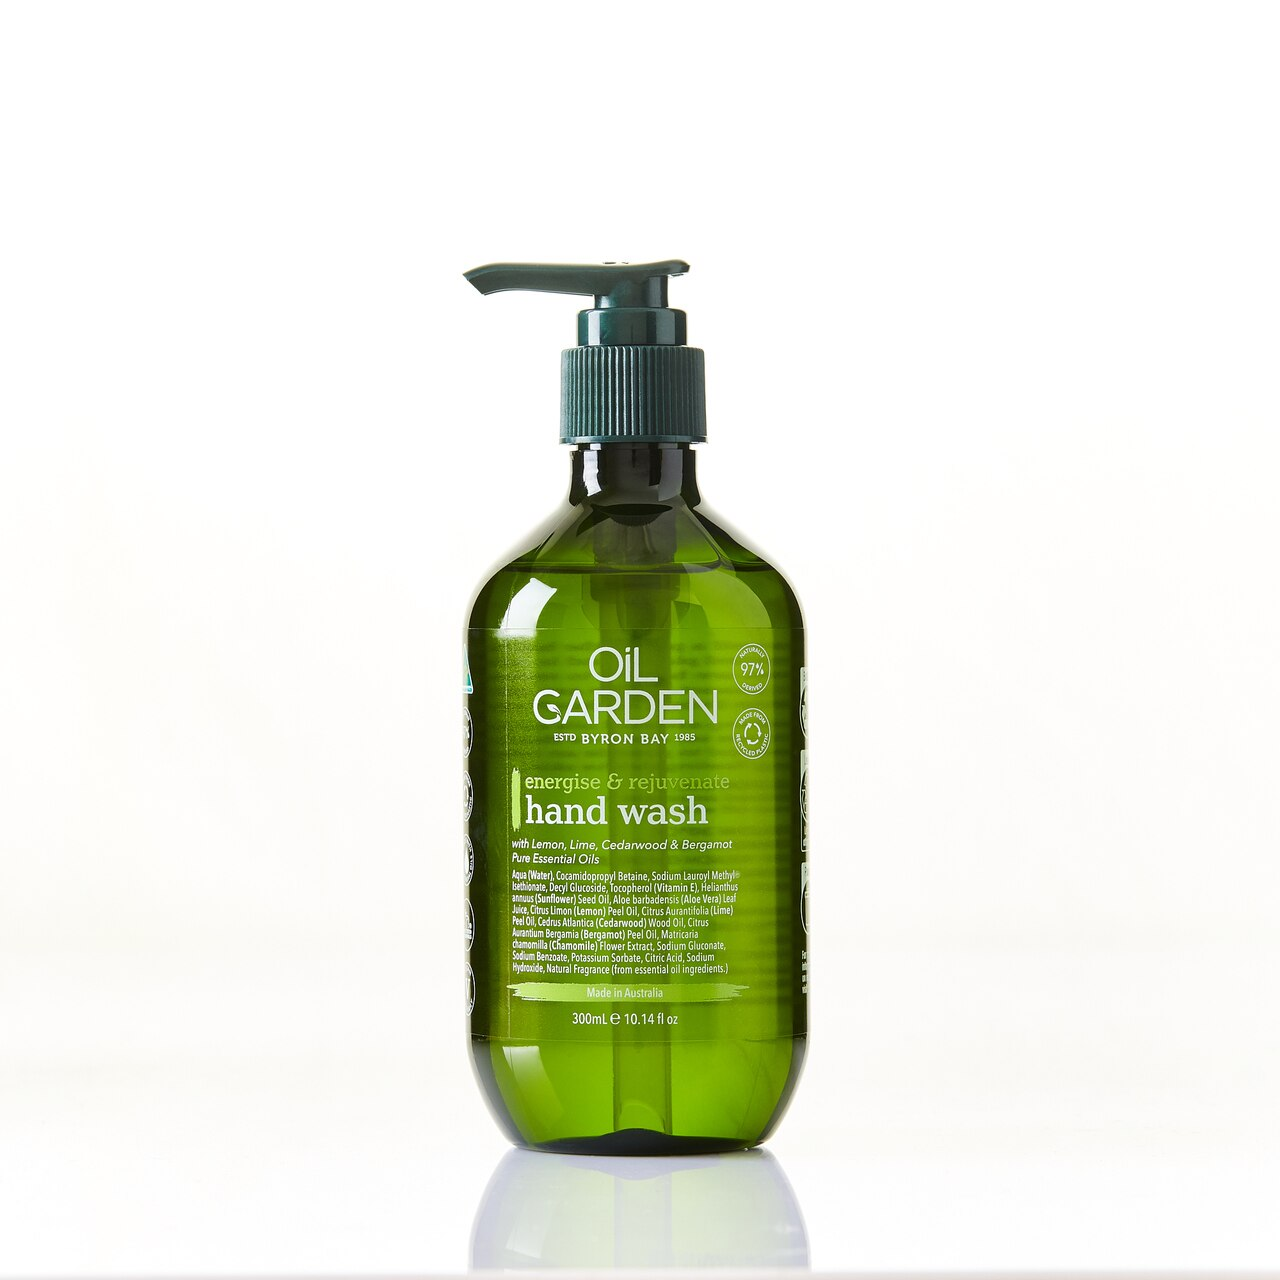 Hand Wash Energise & Rejuvenate 300ml Oil Garden